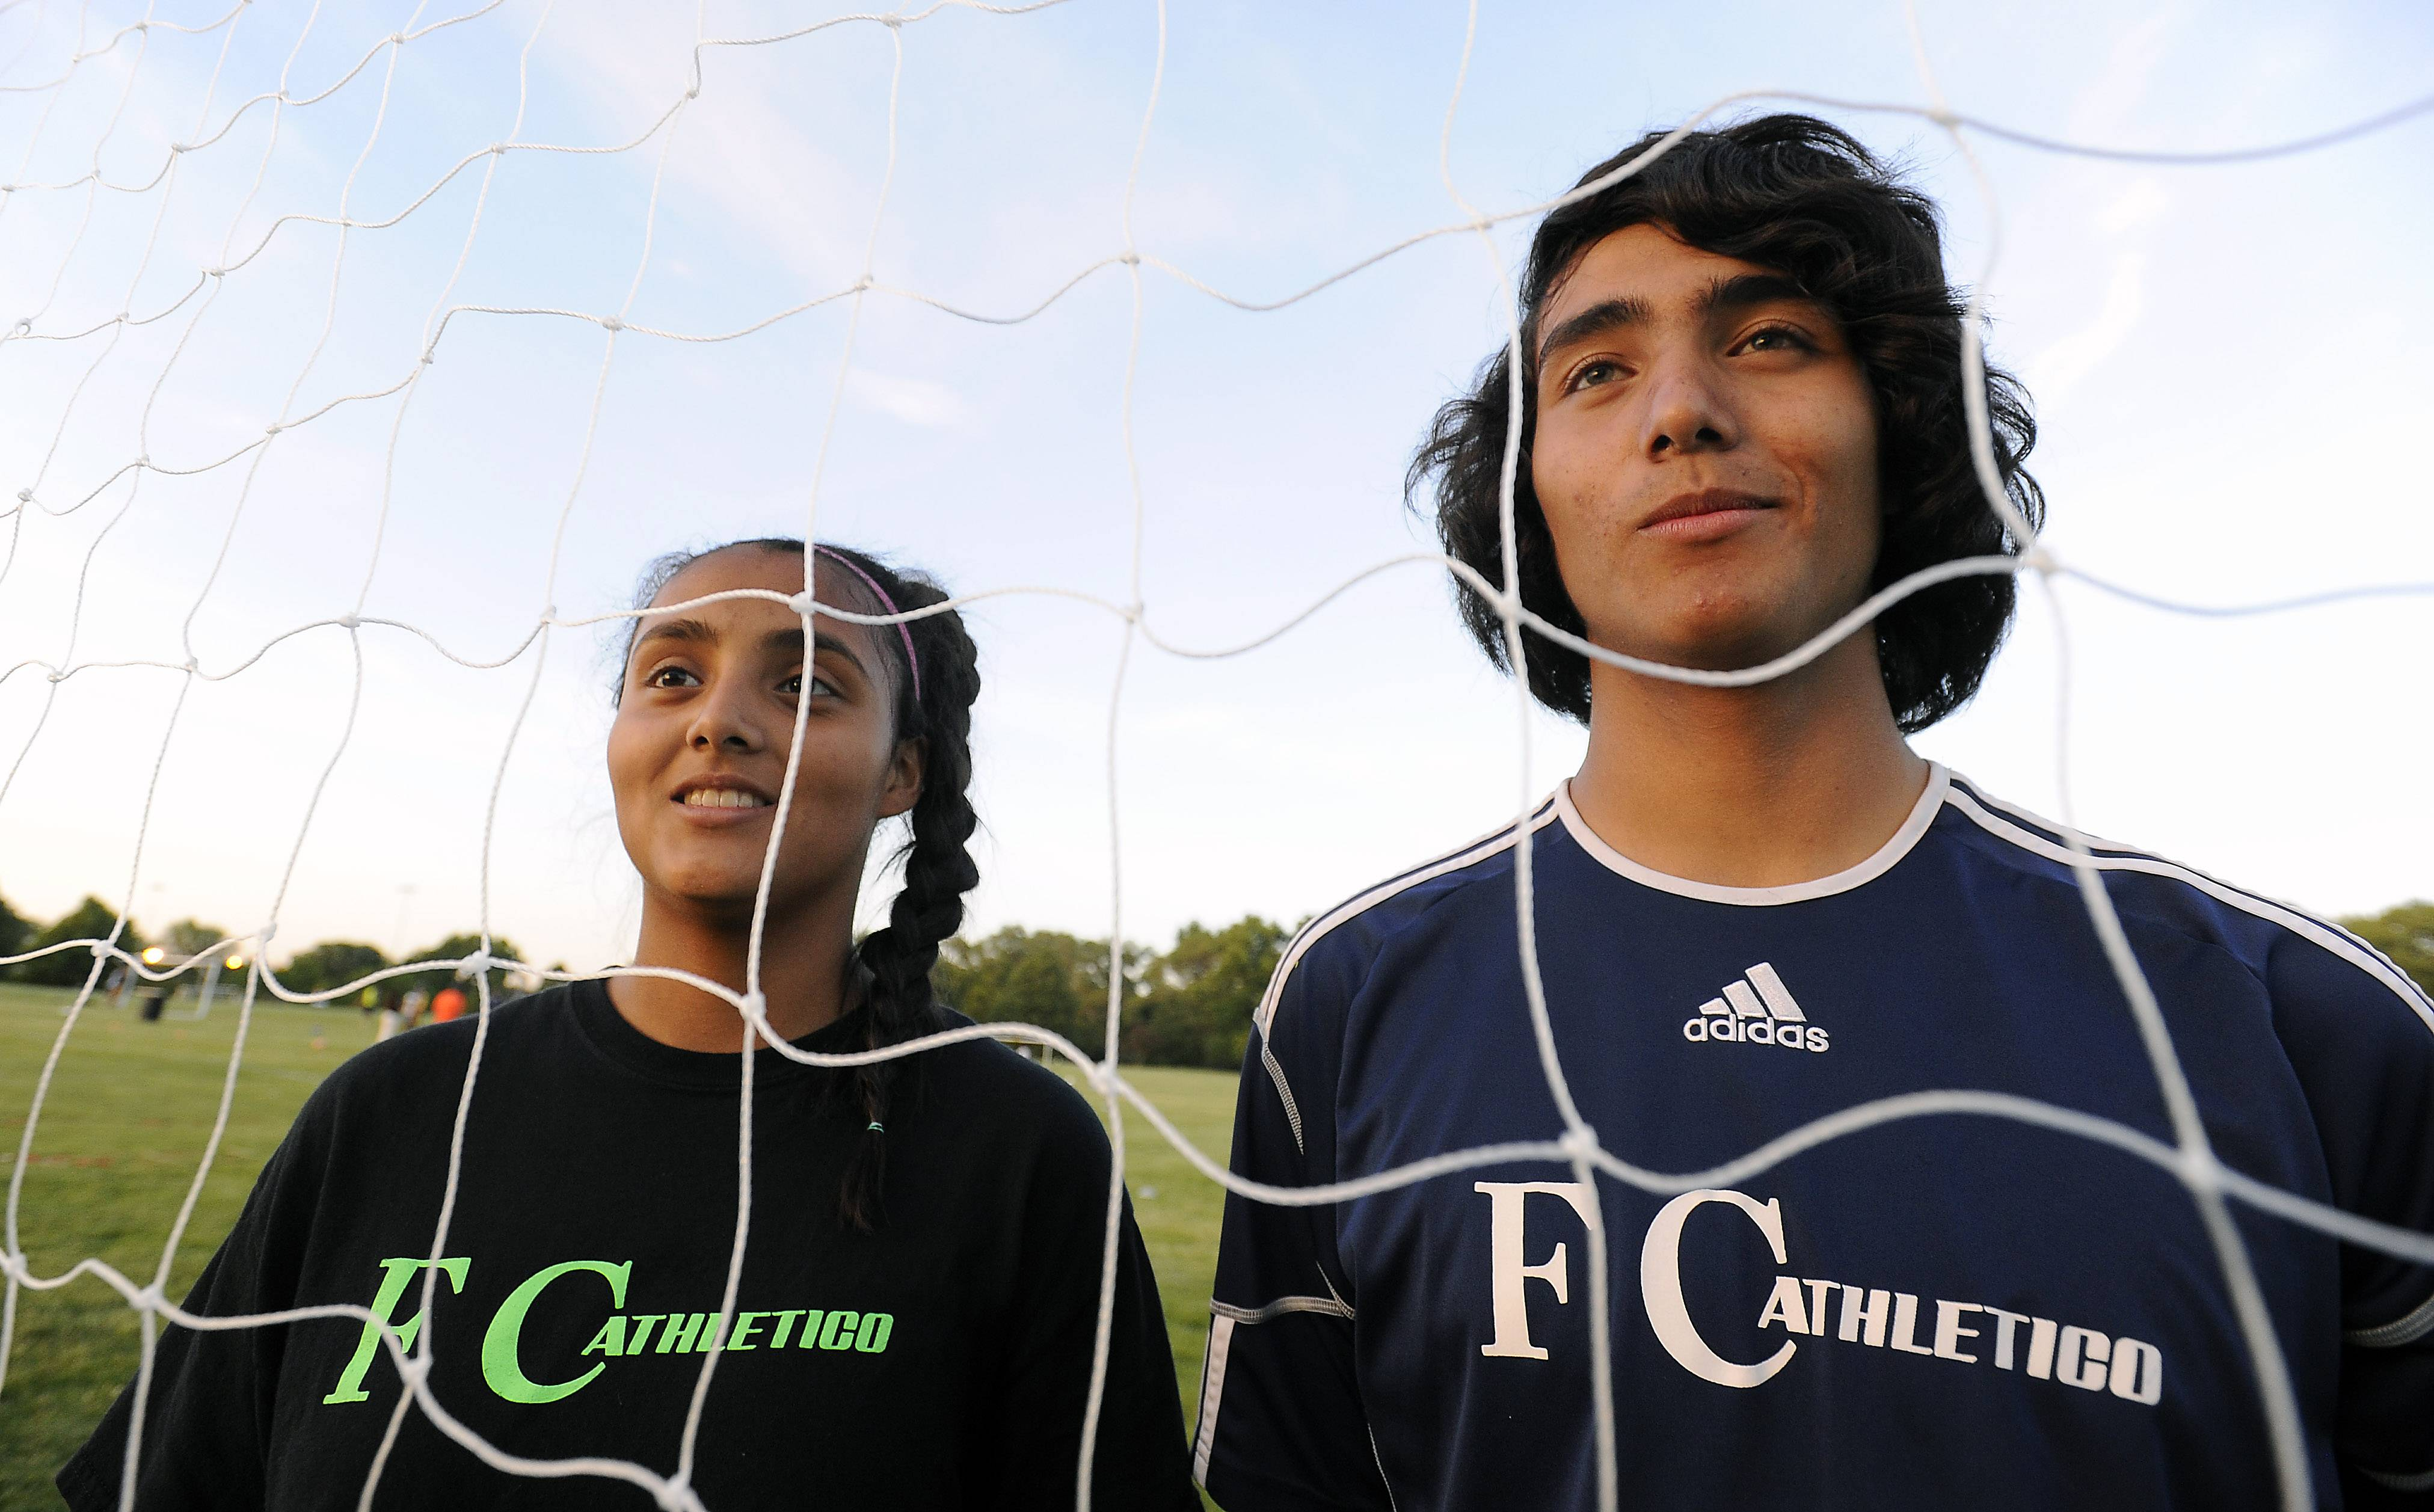 Wheeling siblings Luis, 15, and Alondra Arreola, 14, have their sights set on careers as professional soccer players. Luis is in the player pool for the U.S. national team, and Alondra has caught the eye of scouts for the Mexican national squad.